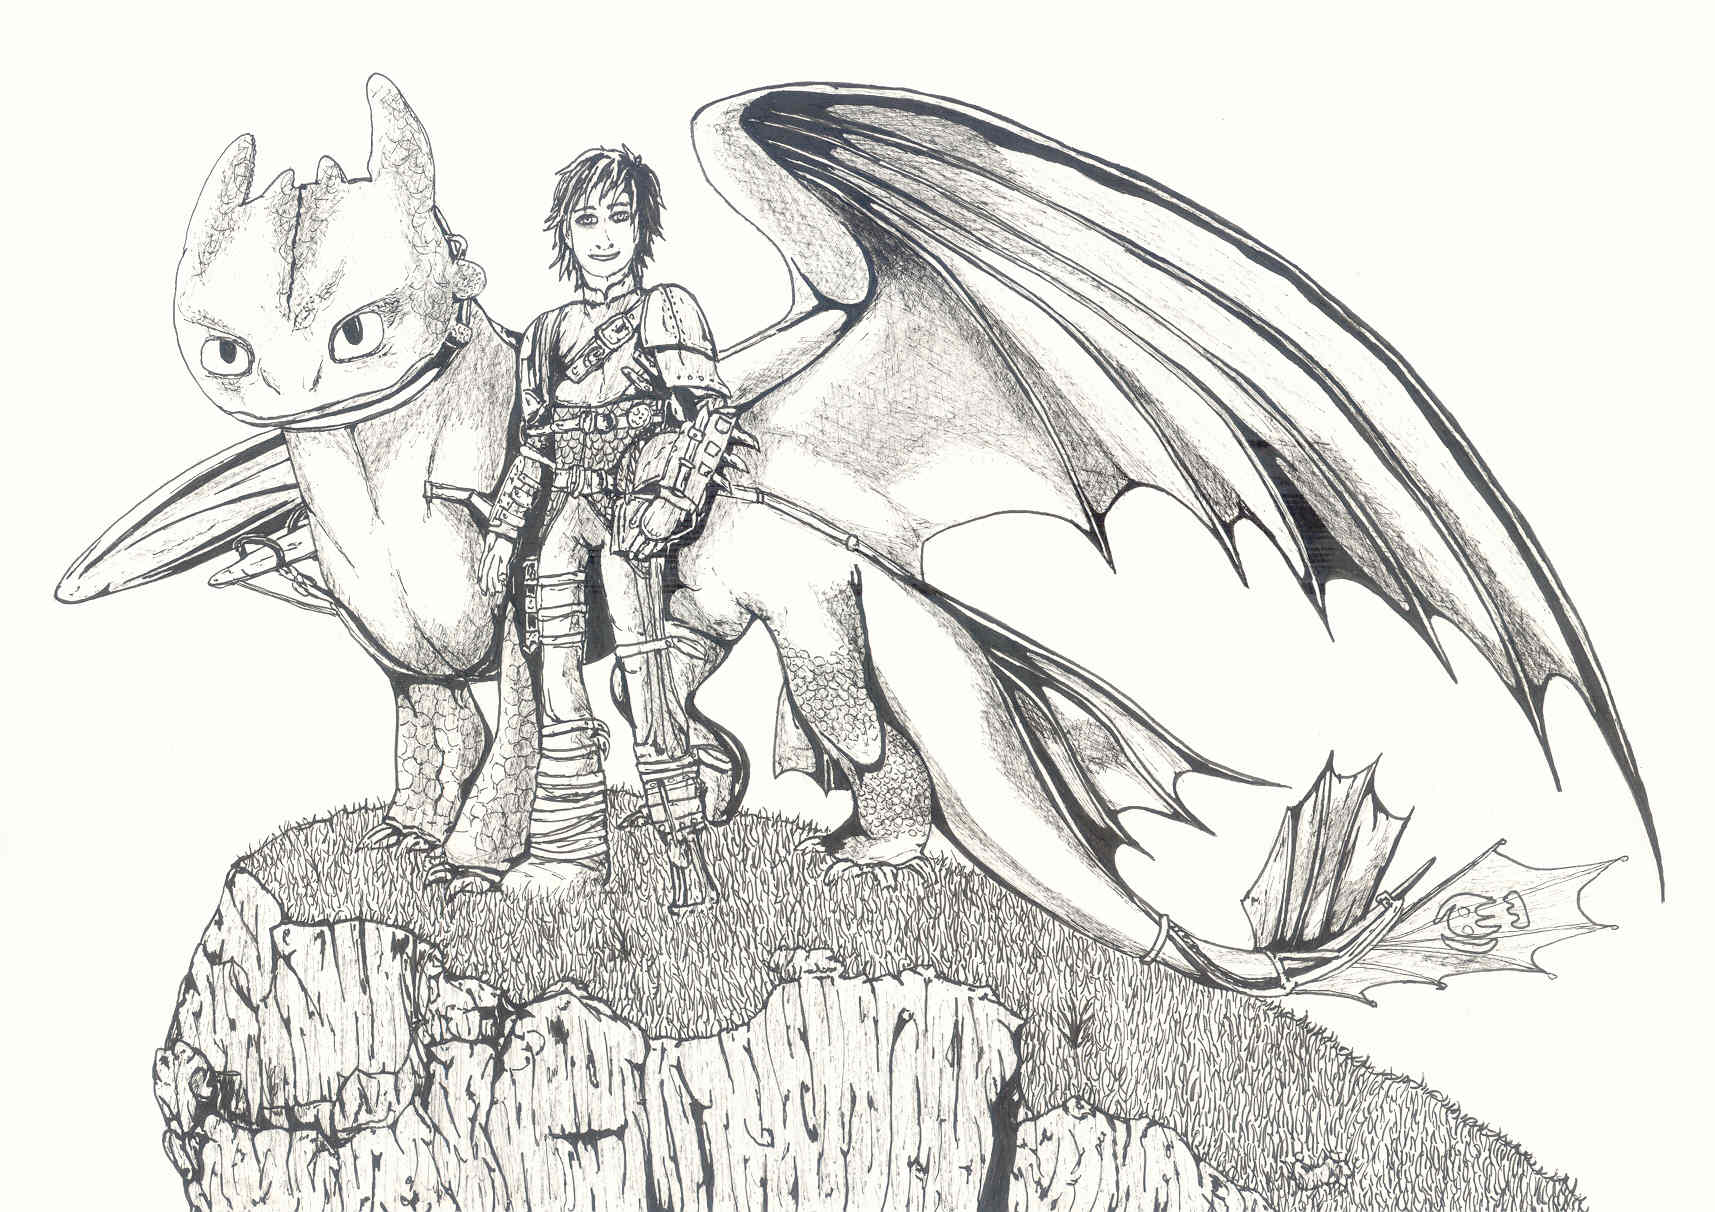 How to train your dragon toothless and hiccup by noscrow on deviantart how to train your dragon toothless and hiccup by noscrow ccuart Images